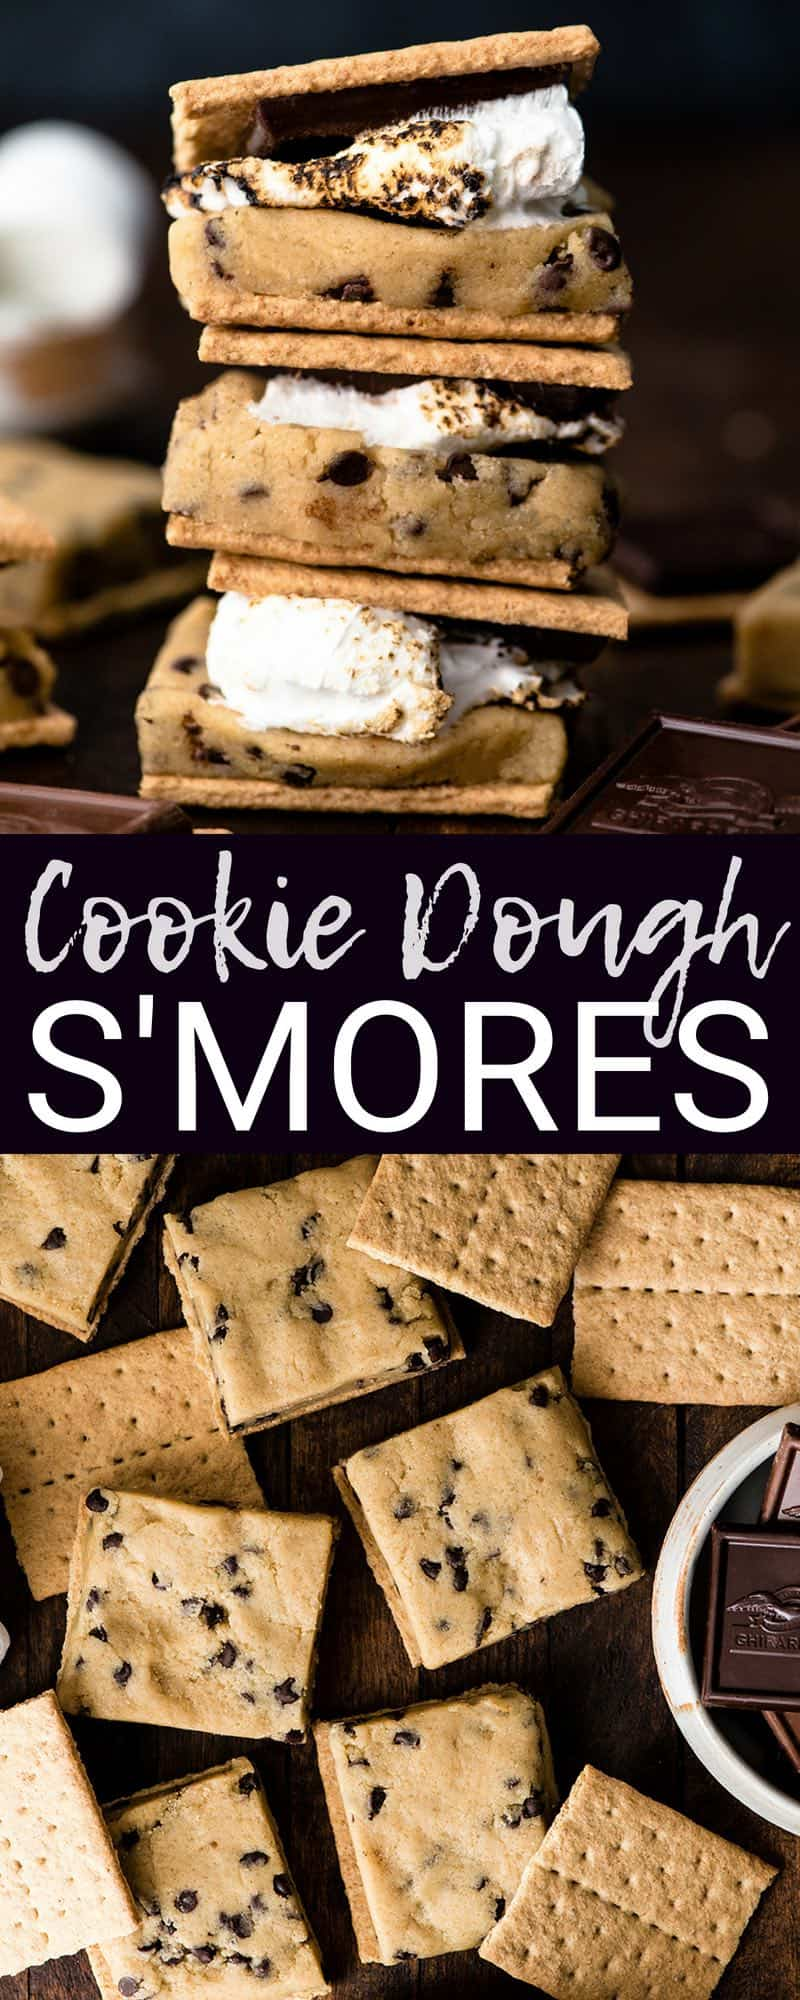 Can you handle these Cookie Dough S'mores?! A thick layer of edible cookie dough (no eggs), a toasty marshmallow and a piece of chocolate are all sandwiched between two graham crackers to make the best s'more EVER. #smores #cookiedough #dessert #bbq #campfire #marshmallows #chocolate #grahamcrackers